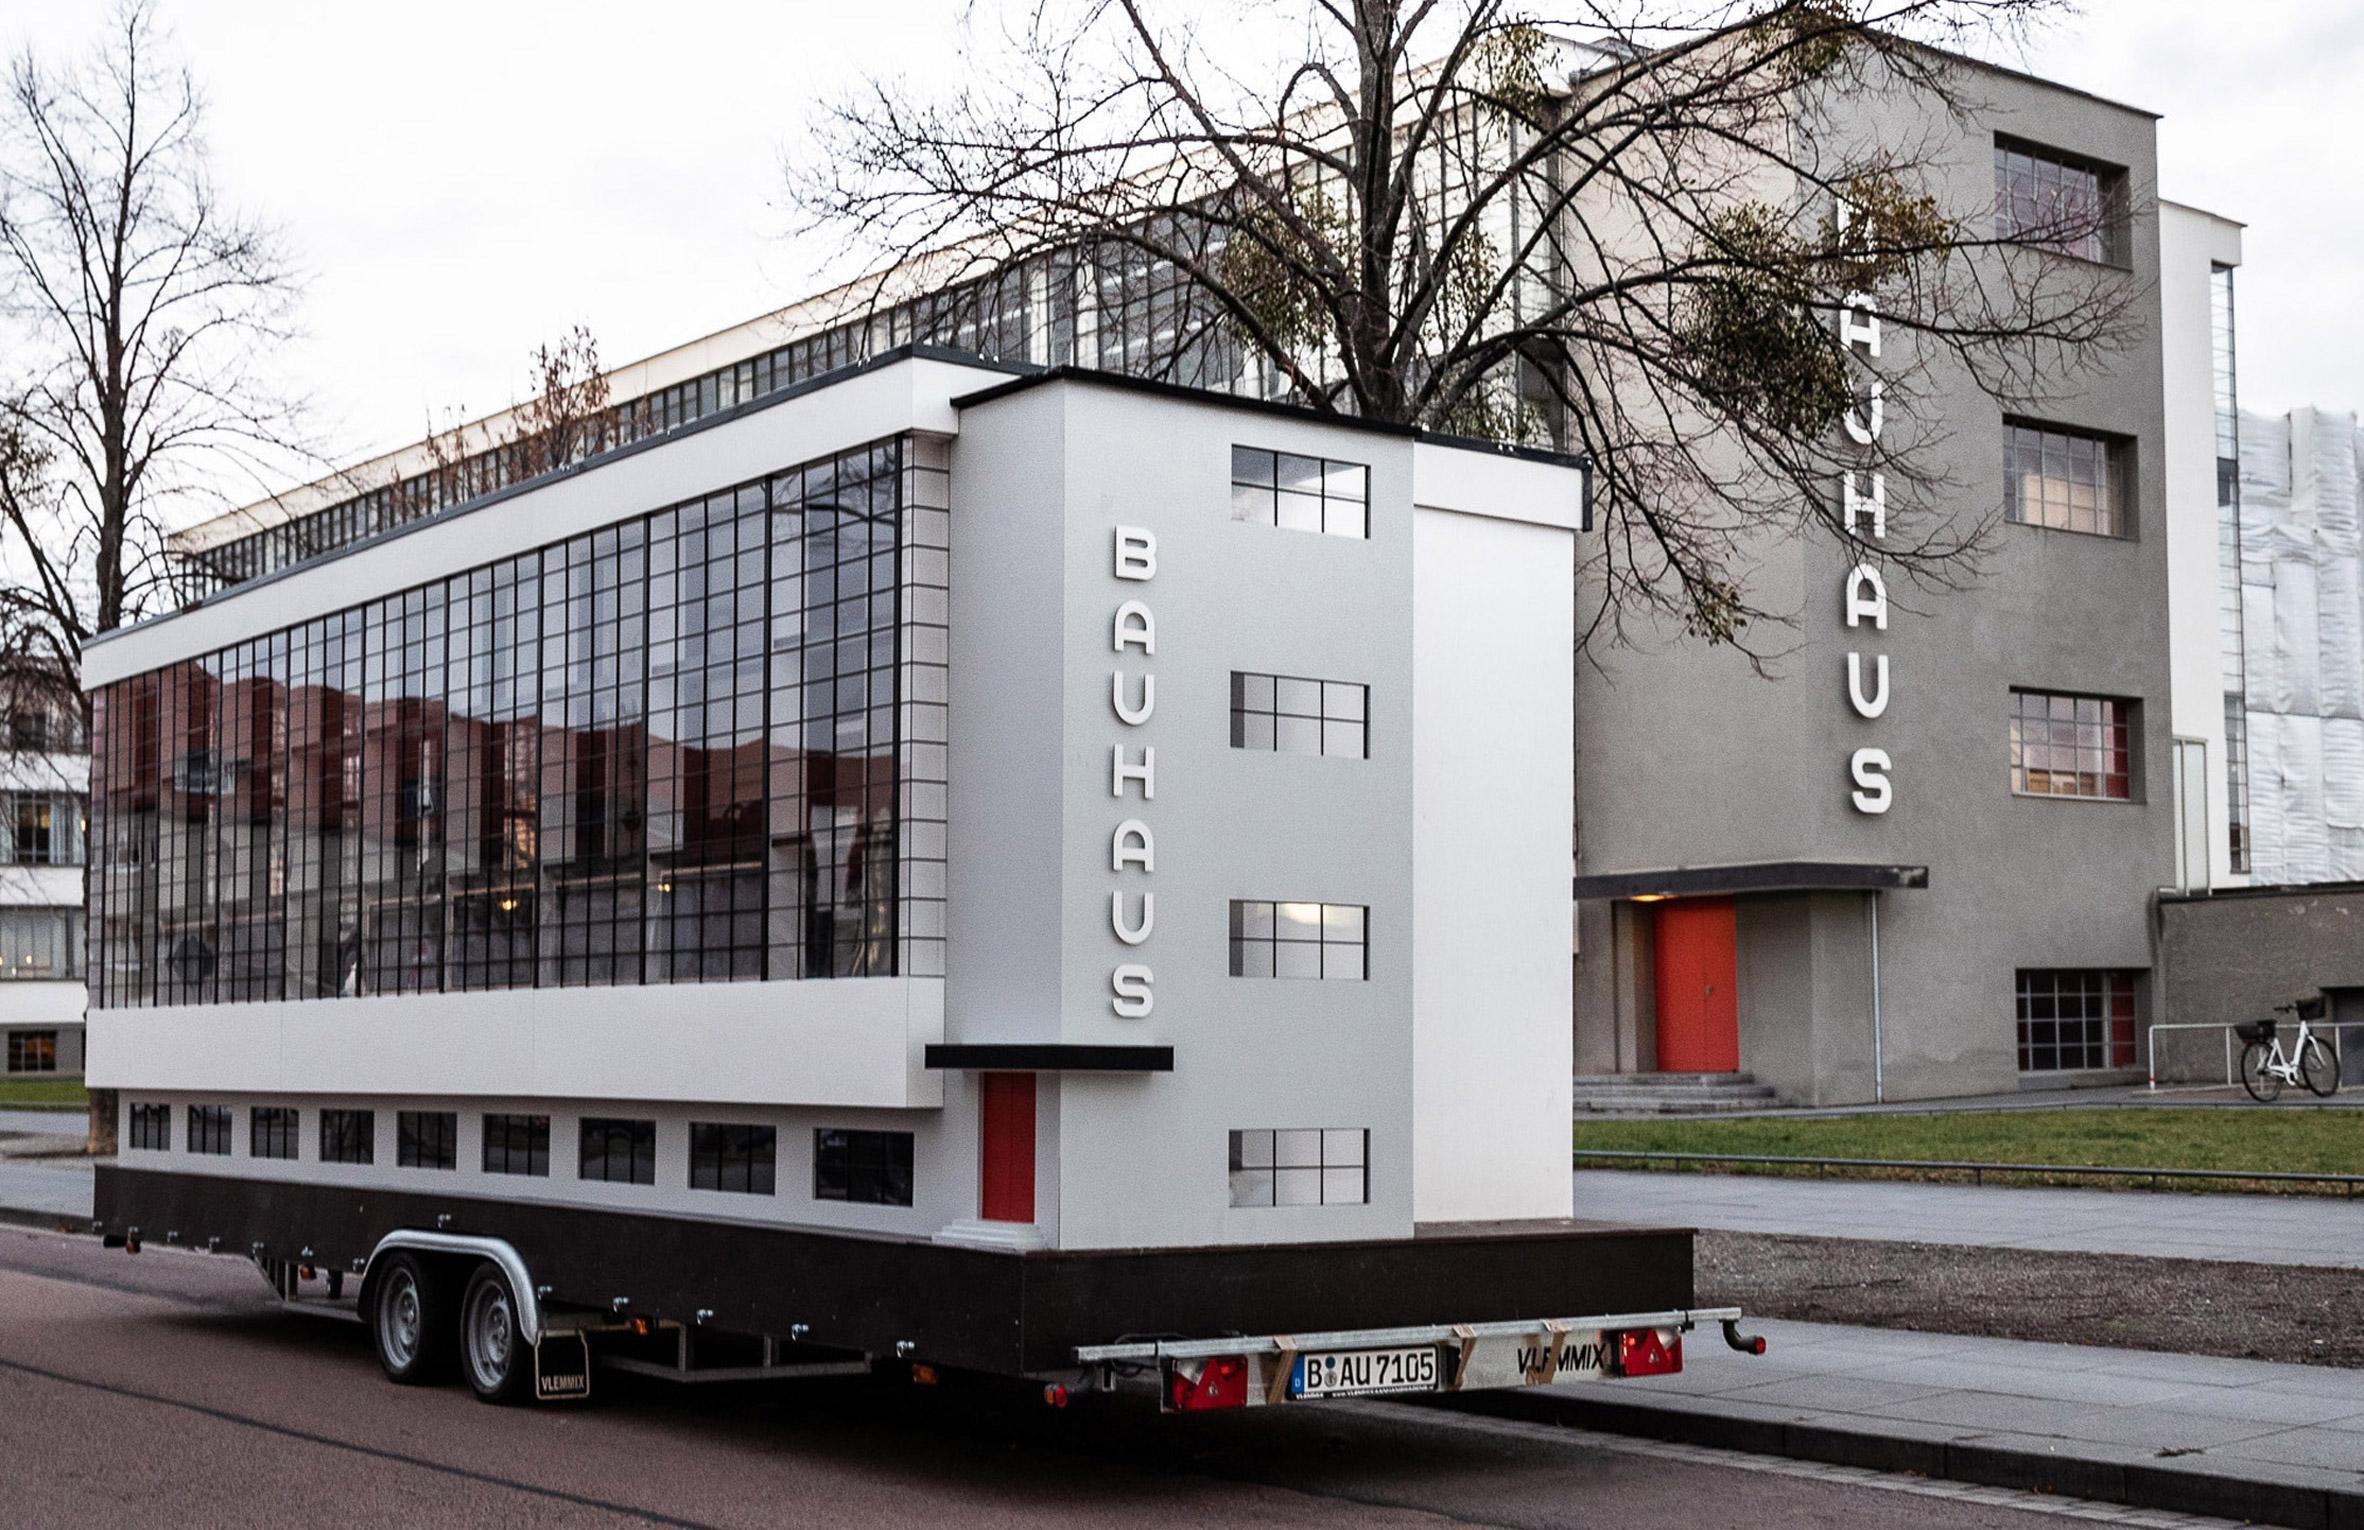 'Bauhaus bus' hits the road in Dessau